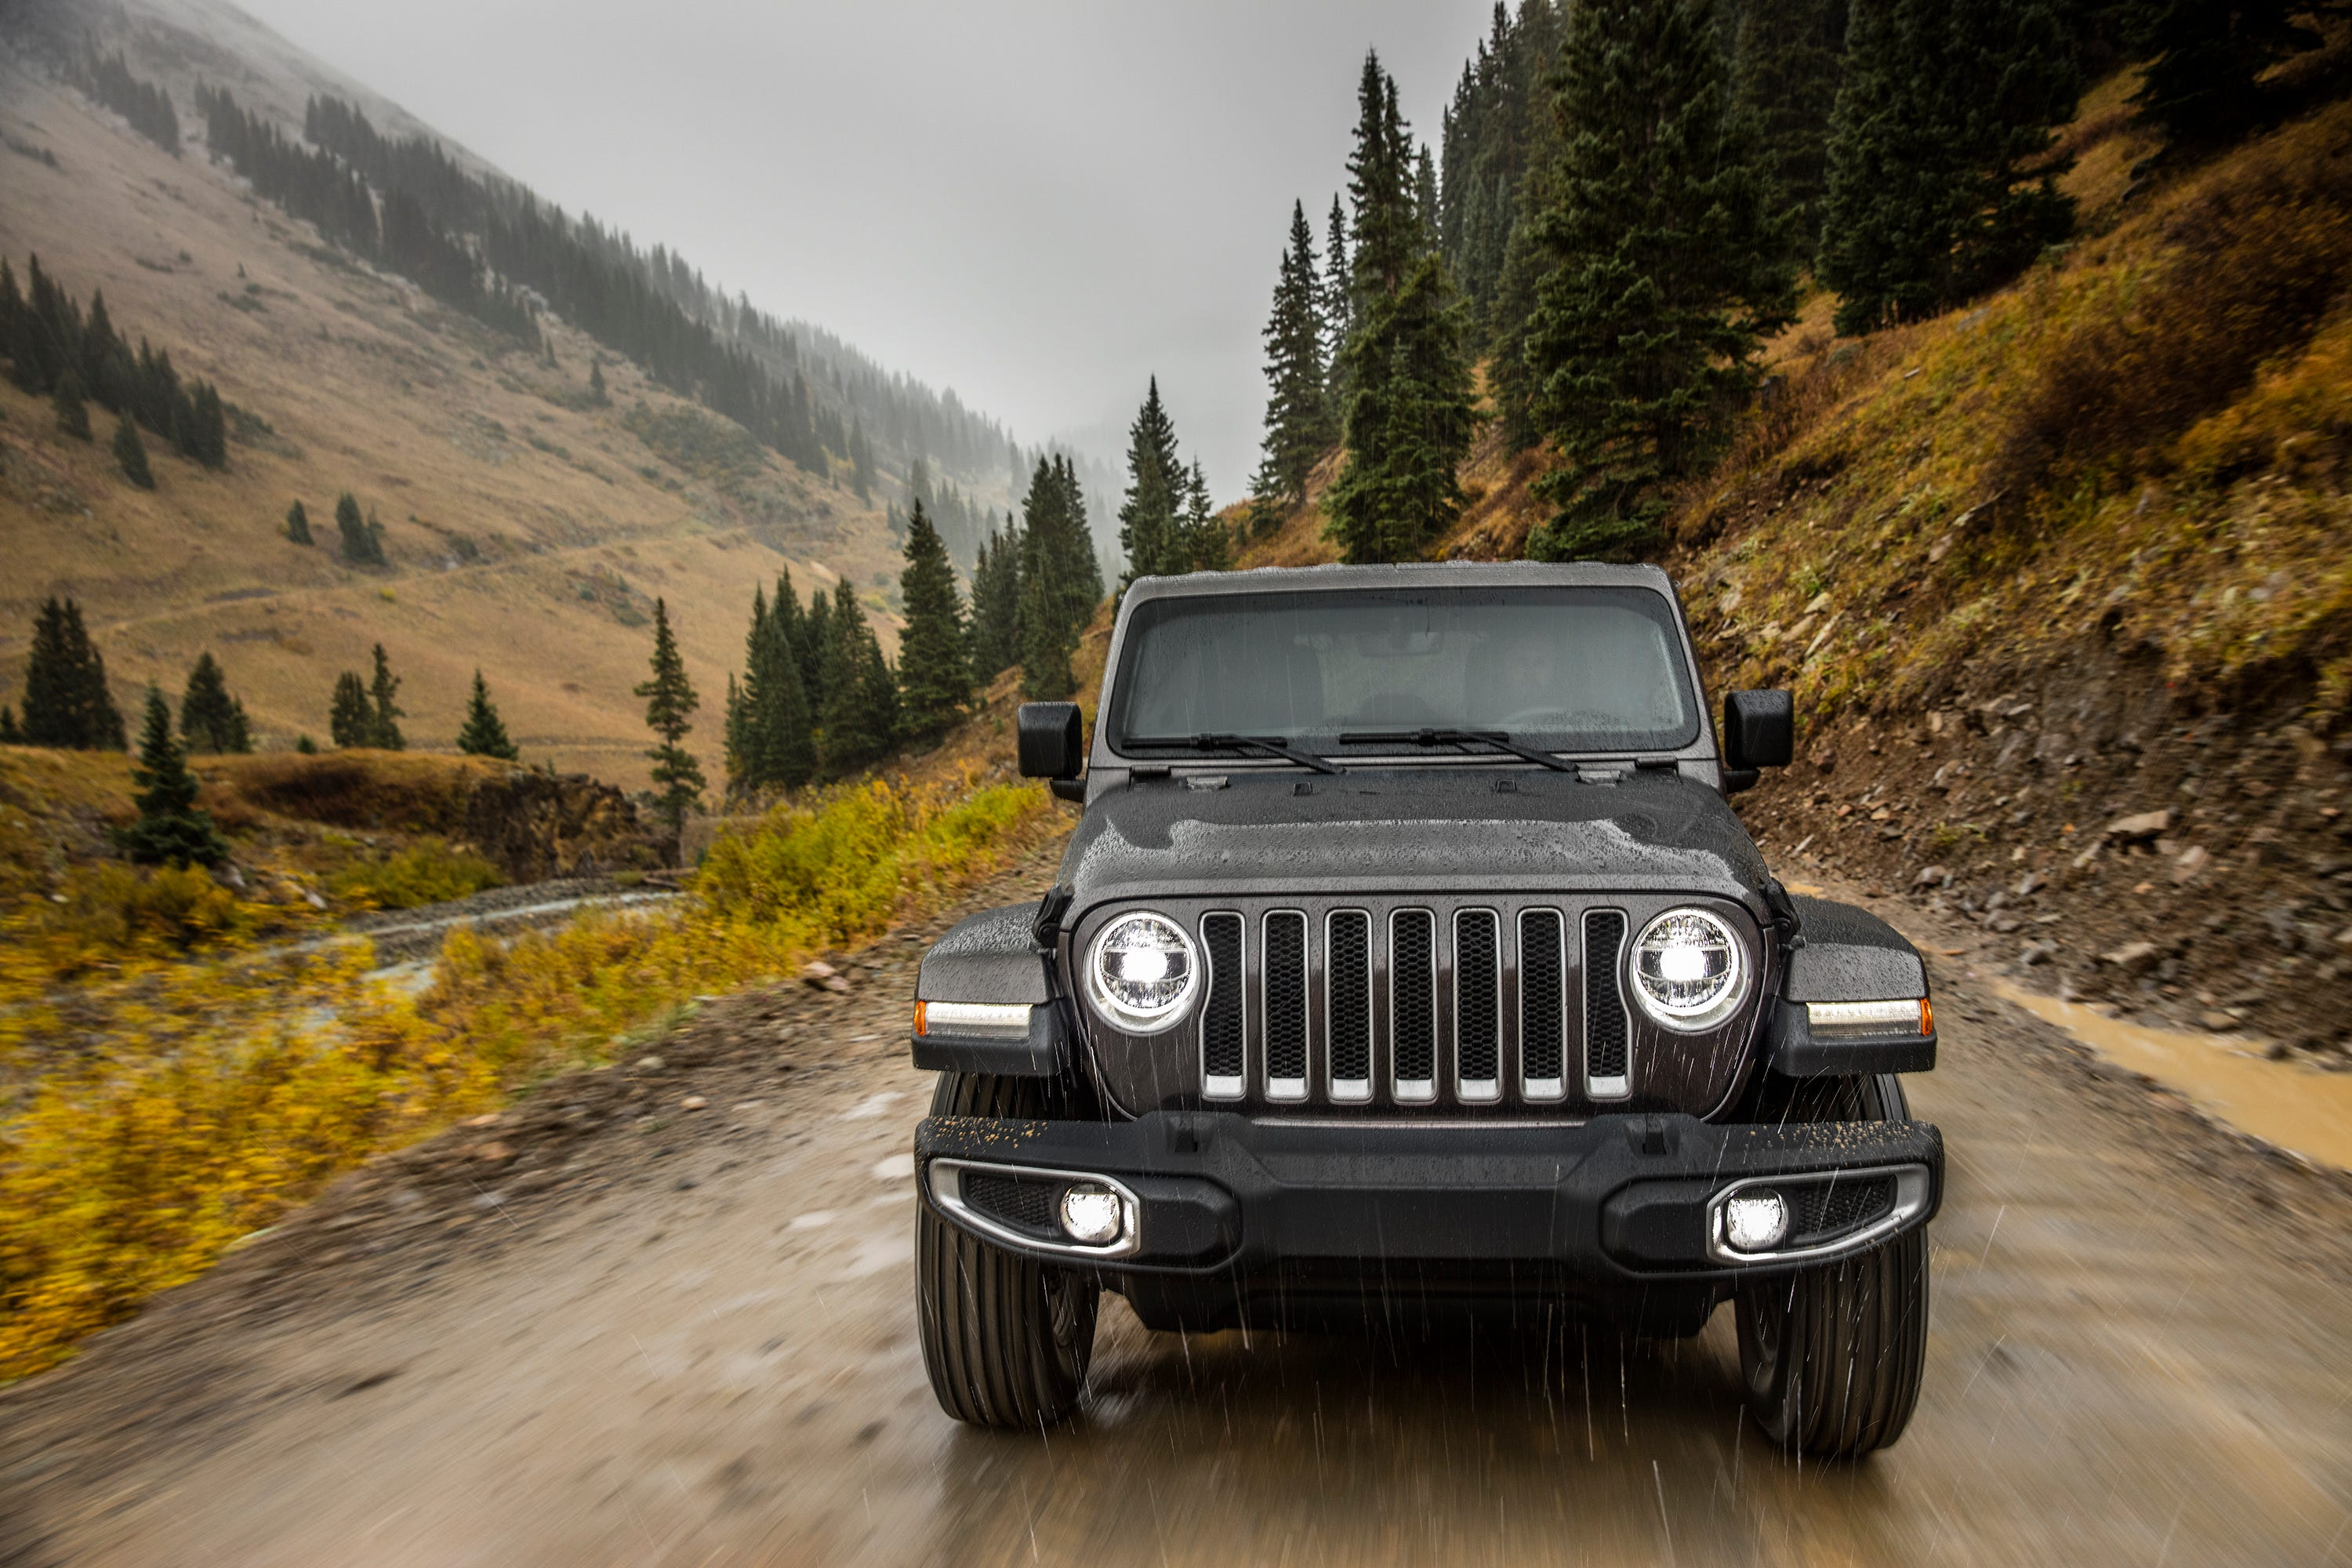 The 2018 Jeep Wrangler Sahara is shown. Heritage is